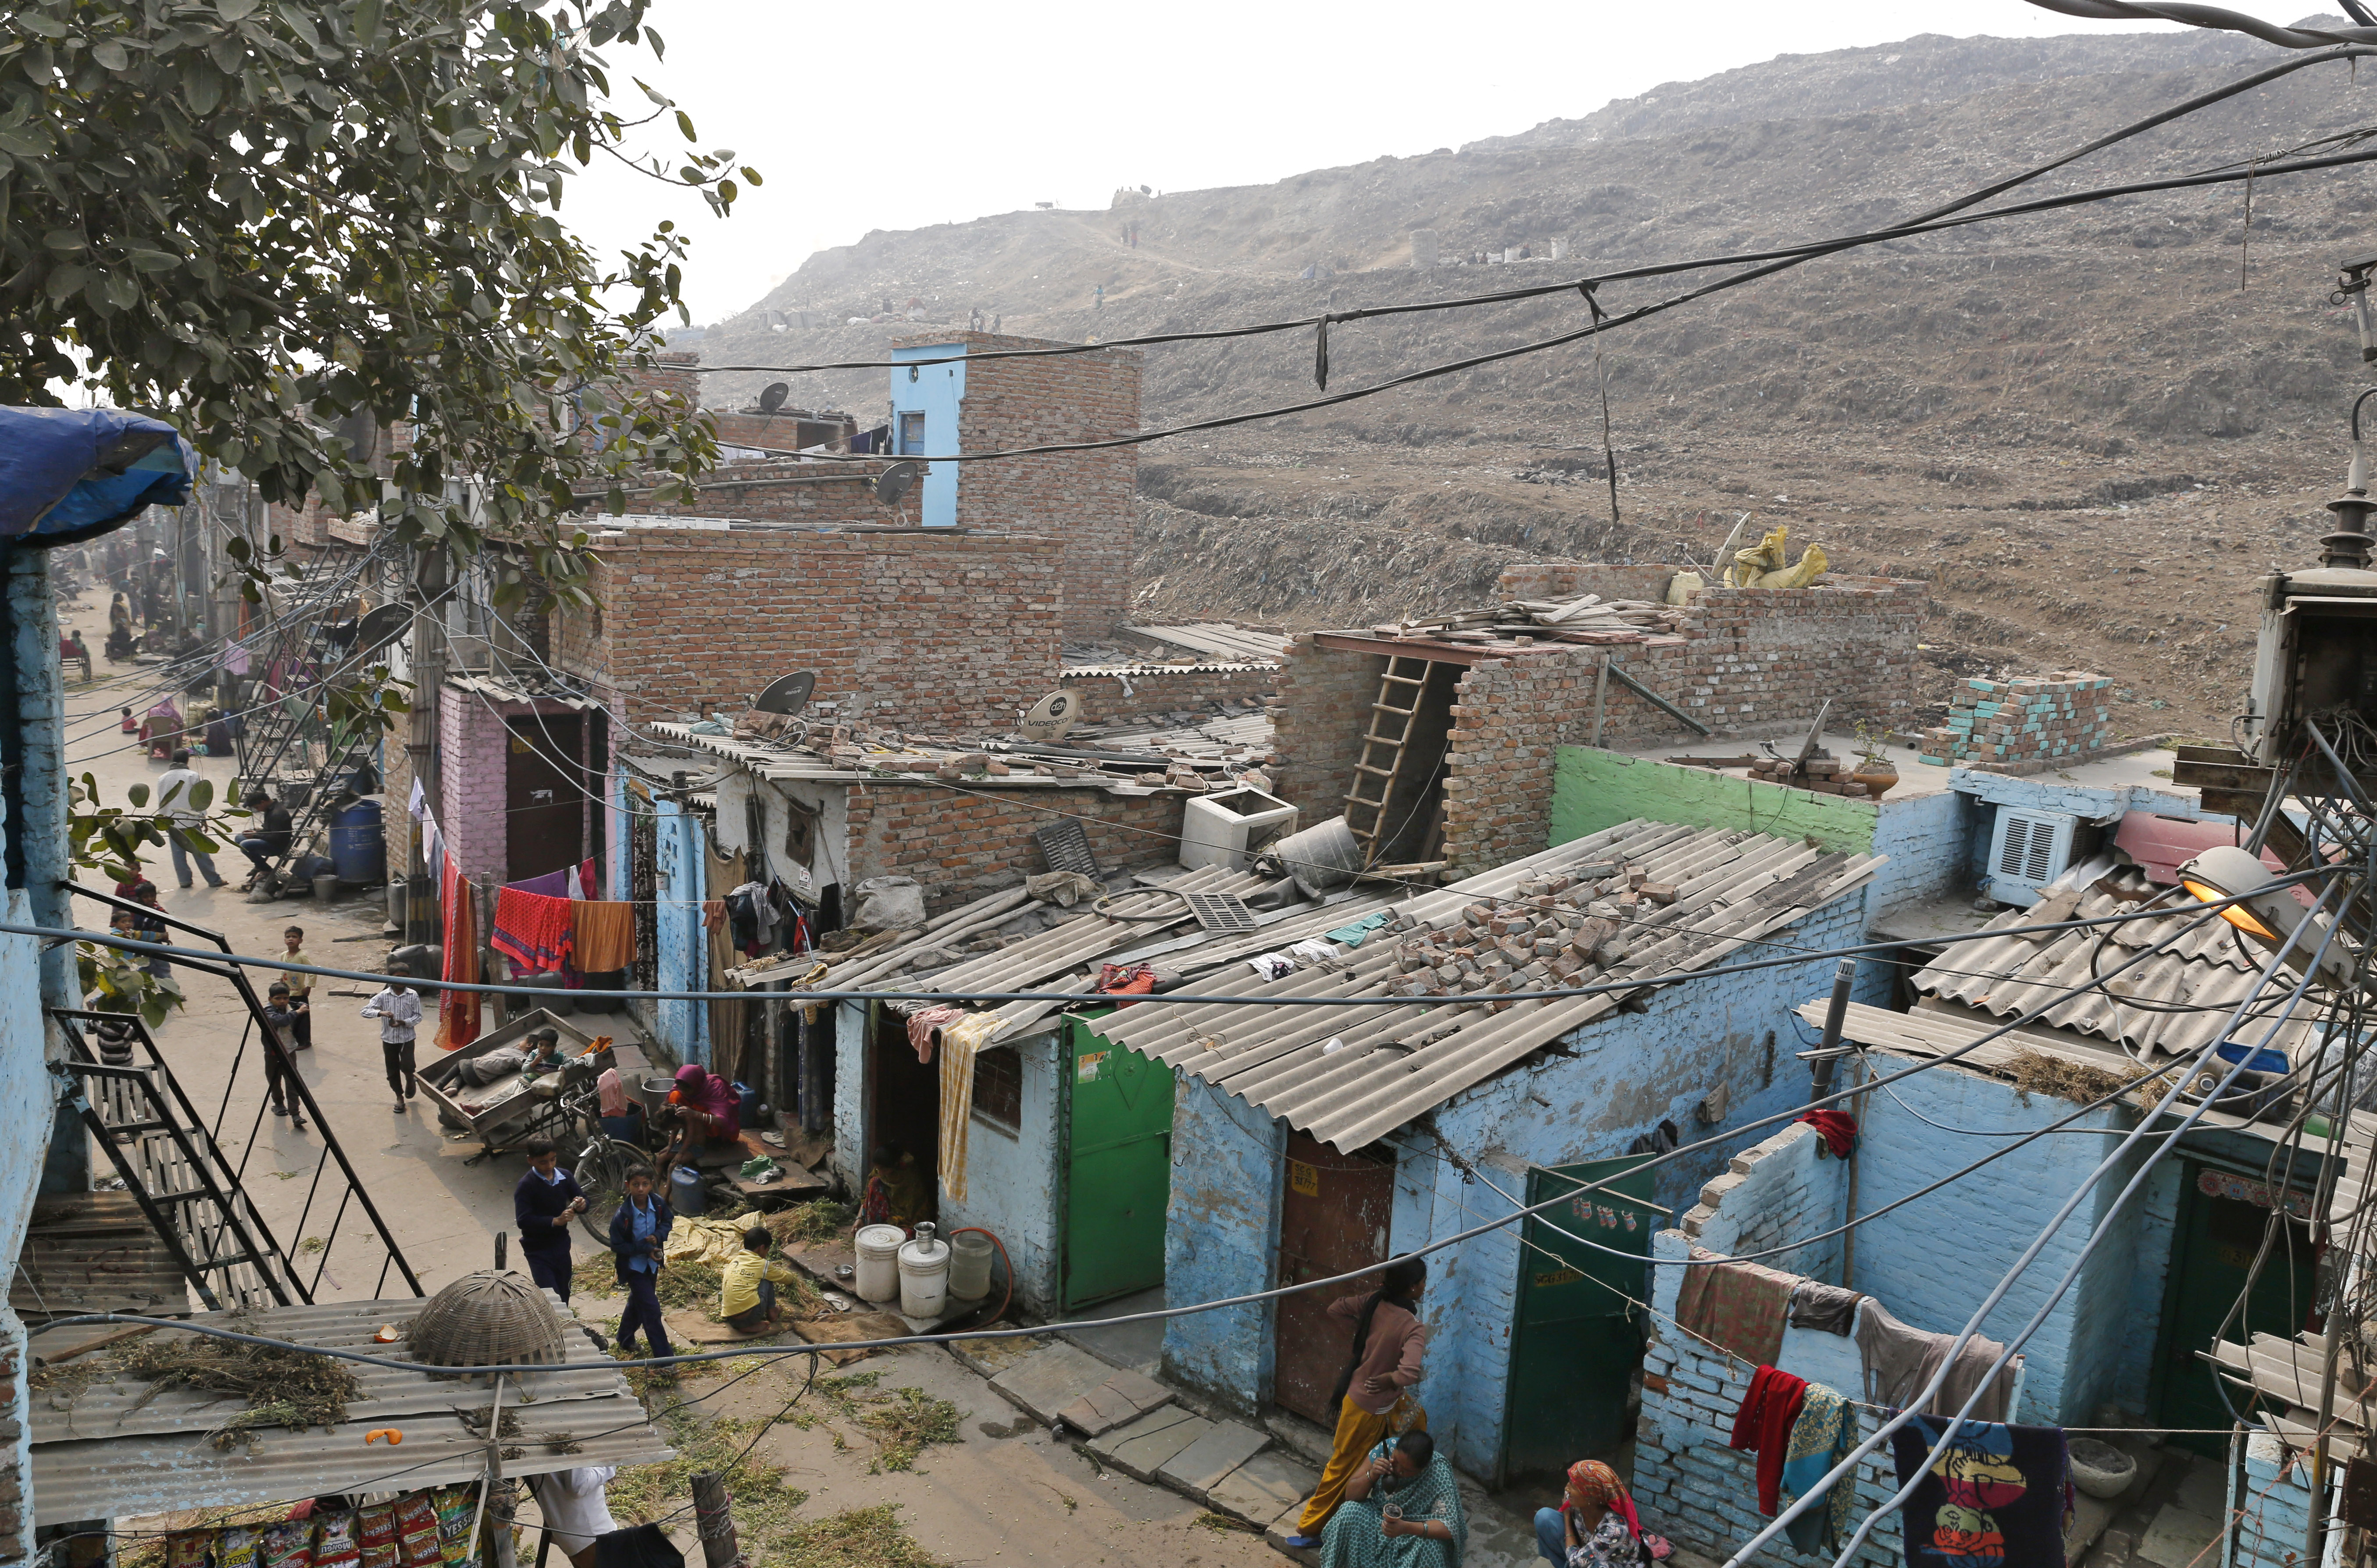 Government schemes envisage the development of land occupied by slums by shifting the residents into compact high-rise towers and freeing up most of the land for private commercial interest (Photo: Vikas Choudhary)